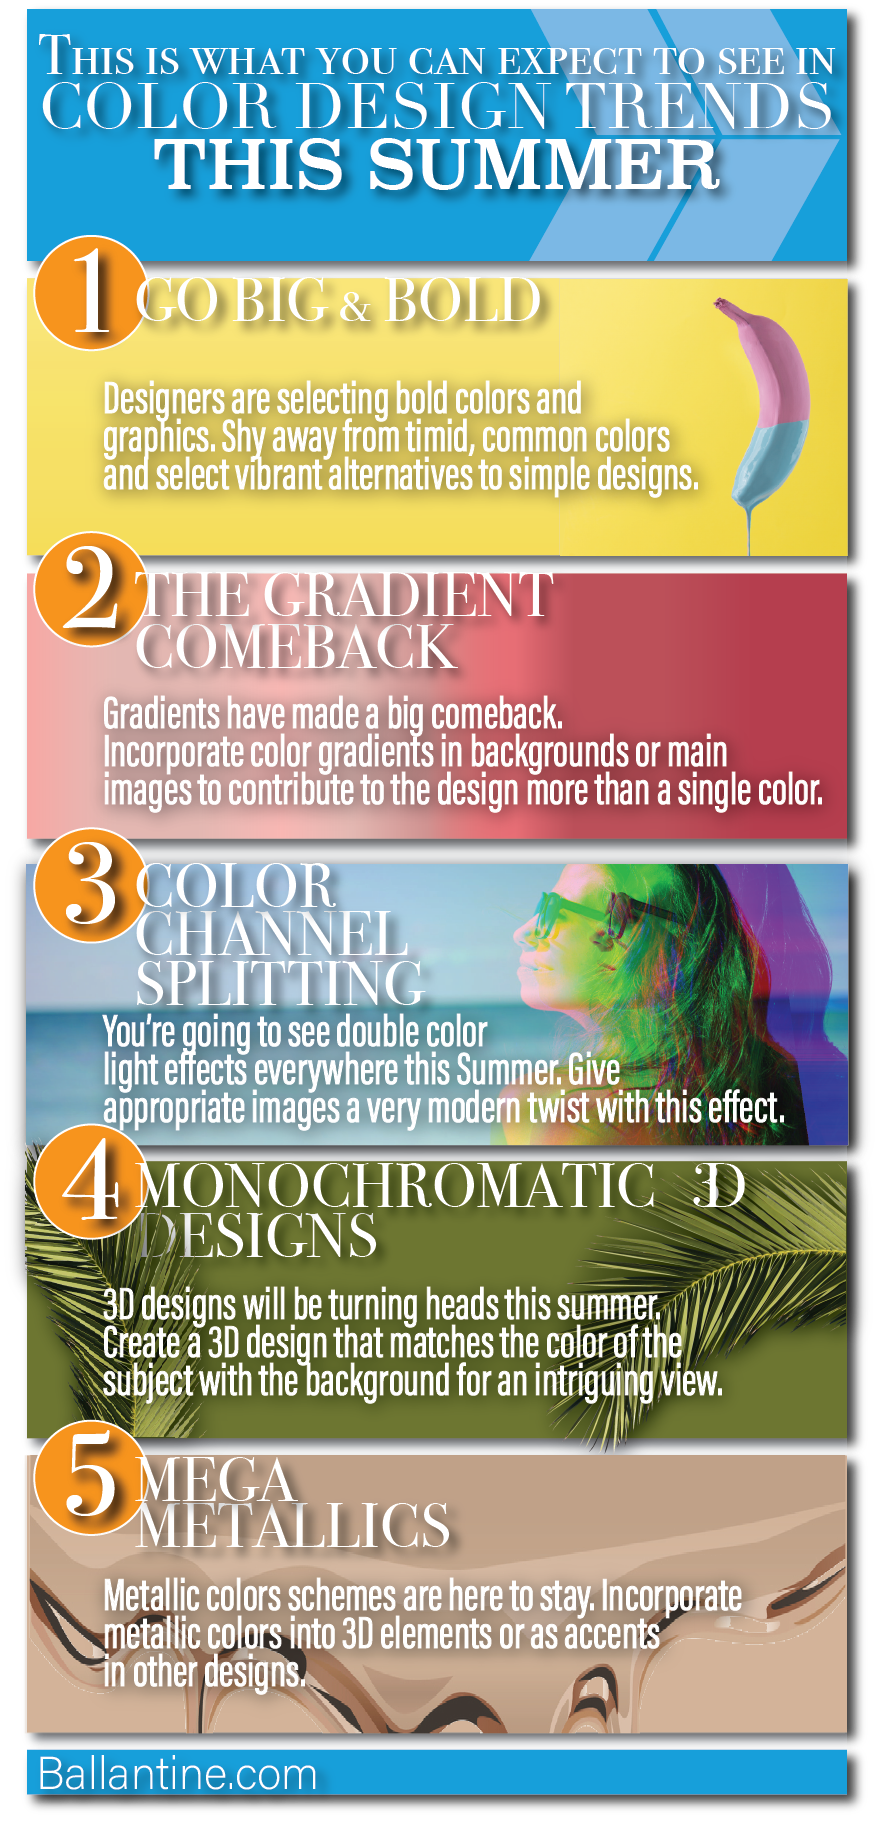 This Is What You Can Expect To See In Color Design This Summer [Infographic]